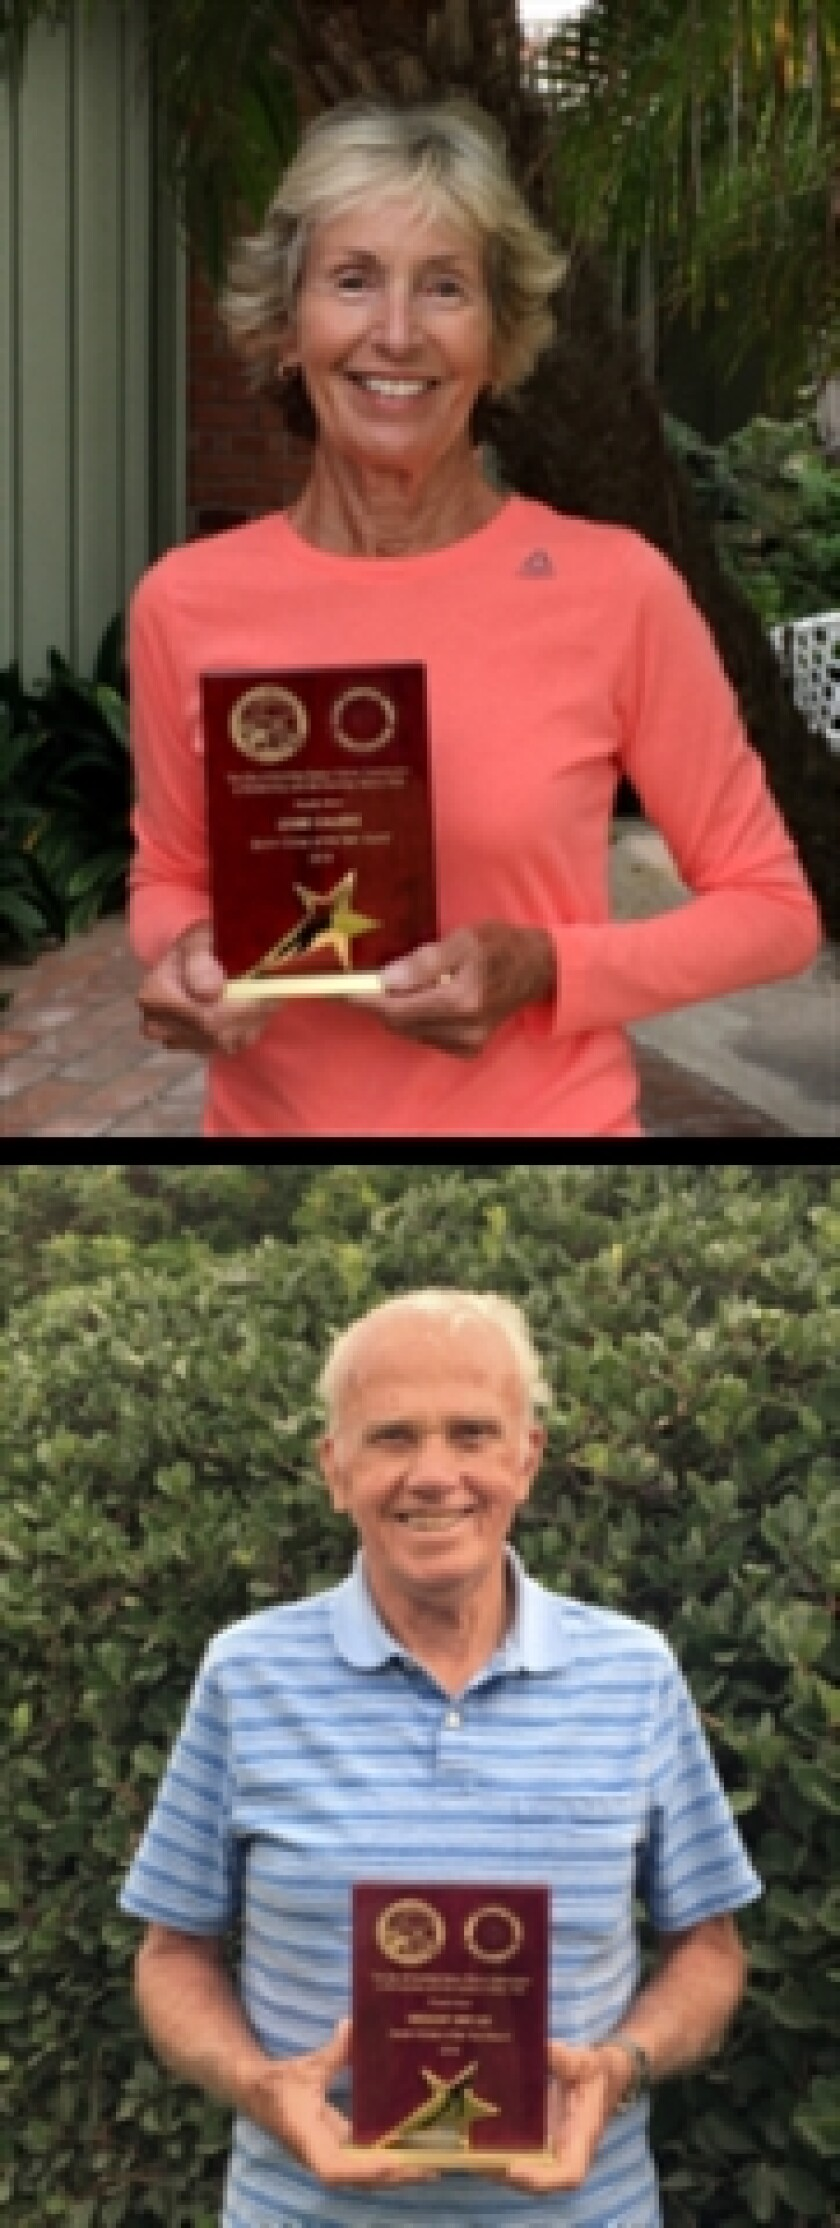 Lynne Calkins and Gregory Butler received the Encinitas Senior of the Year Award for 2019.